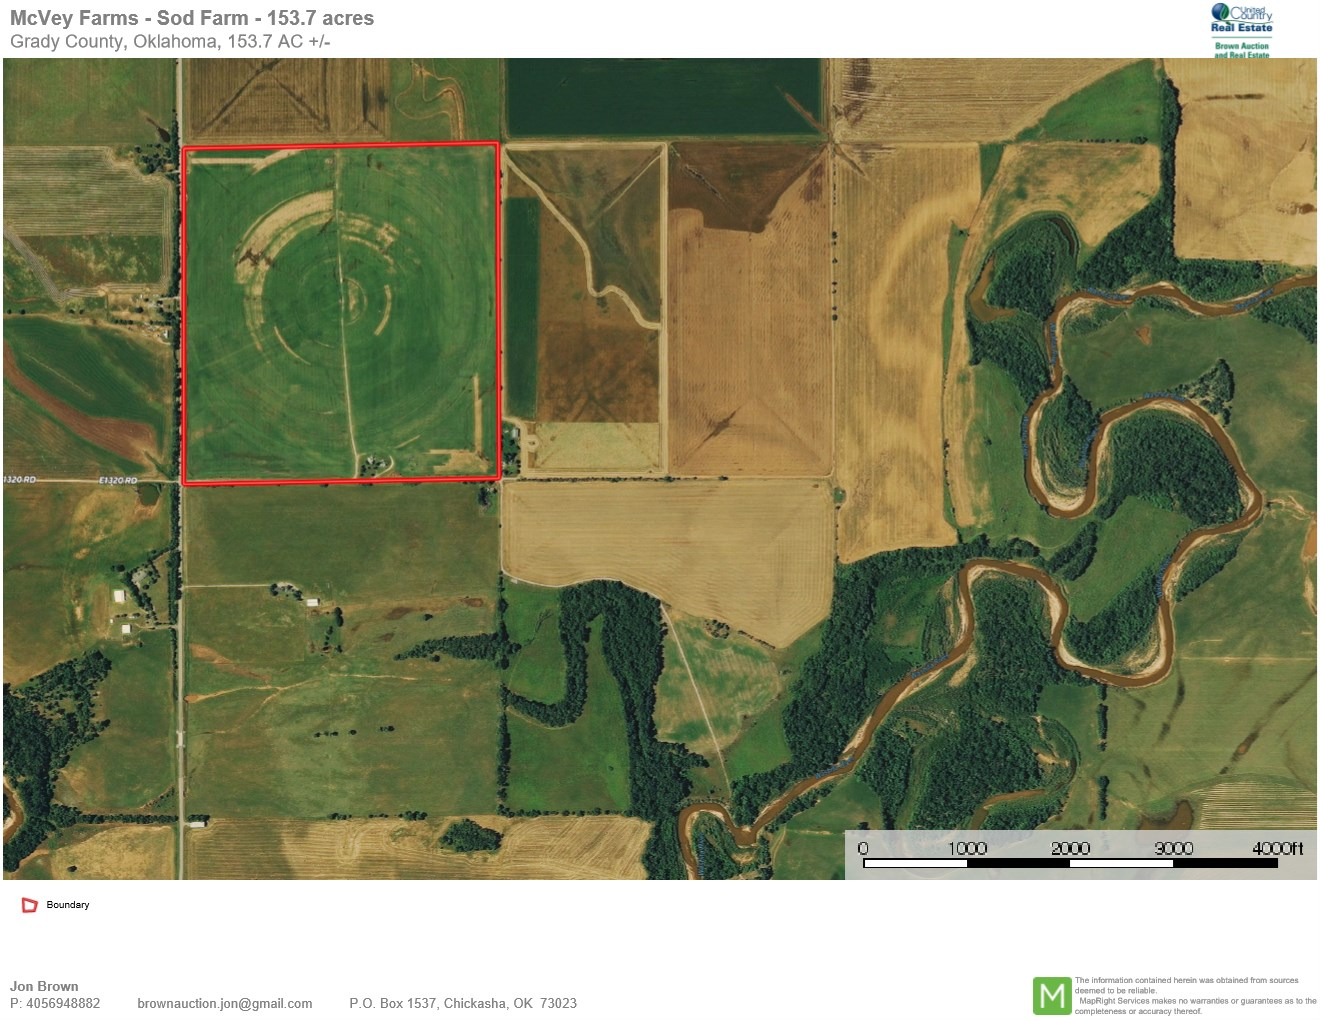 Land For Sale - Auction - Farm For Sale - Irrigated